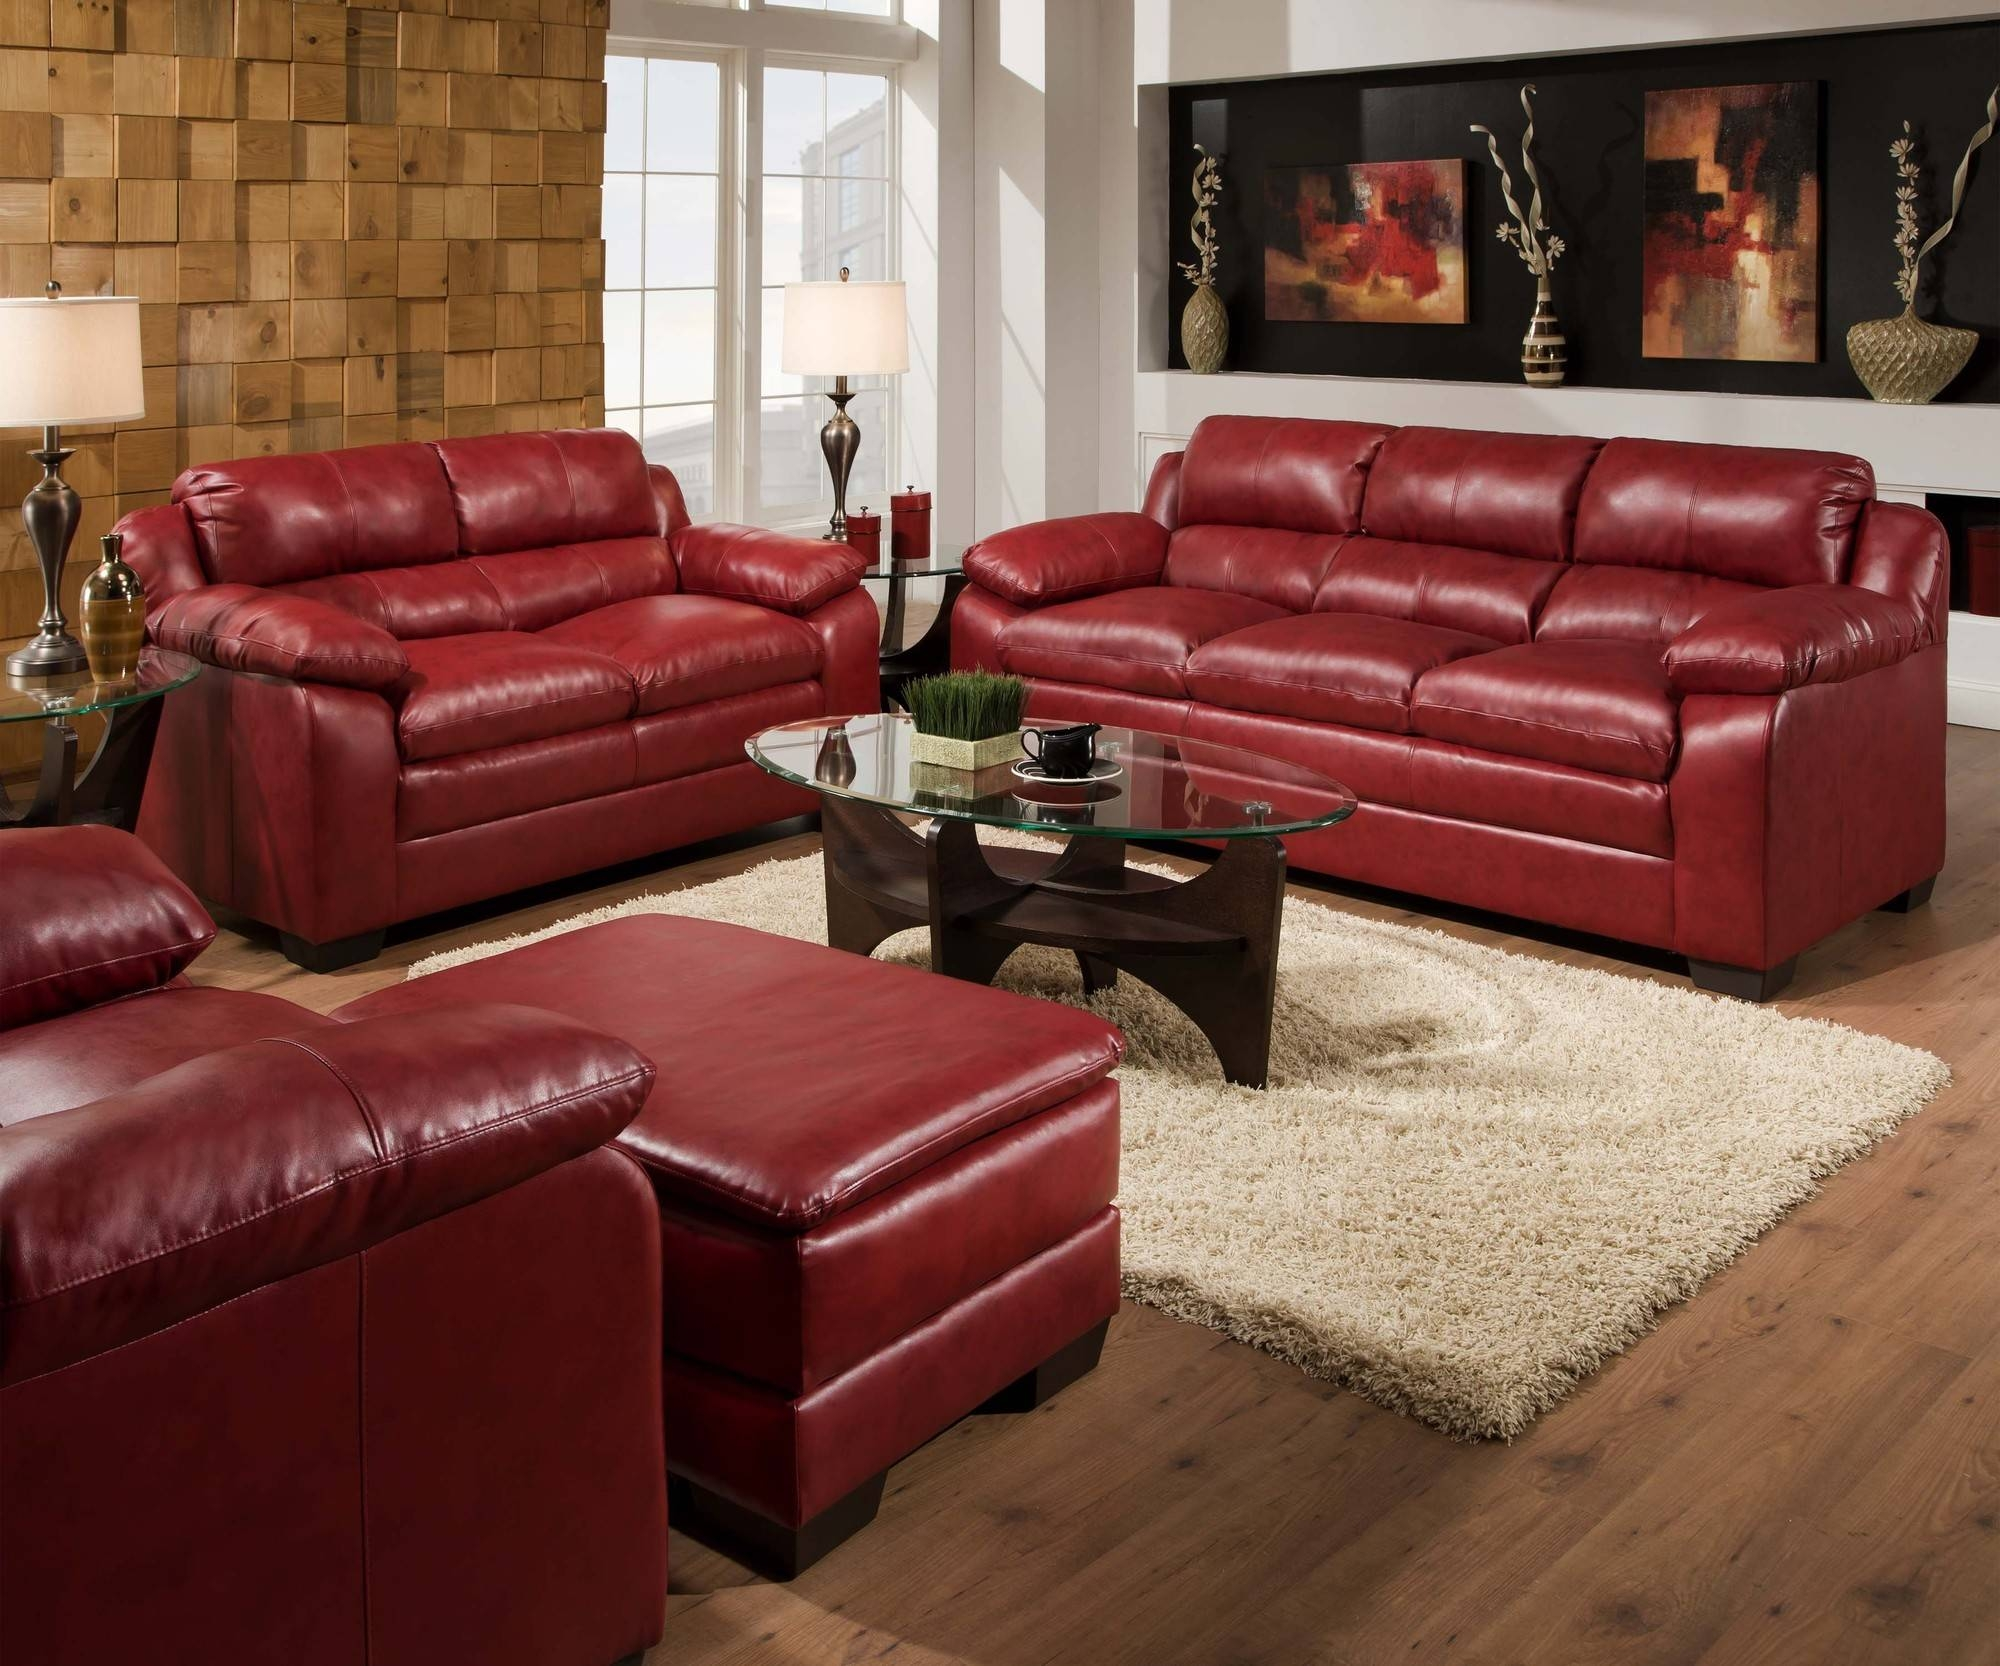 Furniture: Excellent Simmons Upholstery Sofa For Comfortable in Simmons Leather Sofas (Image 2 of 15)